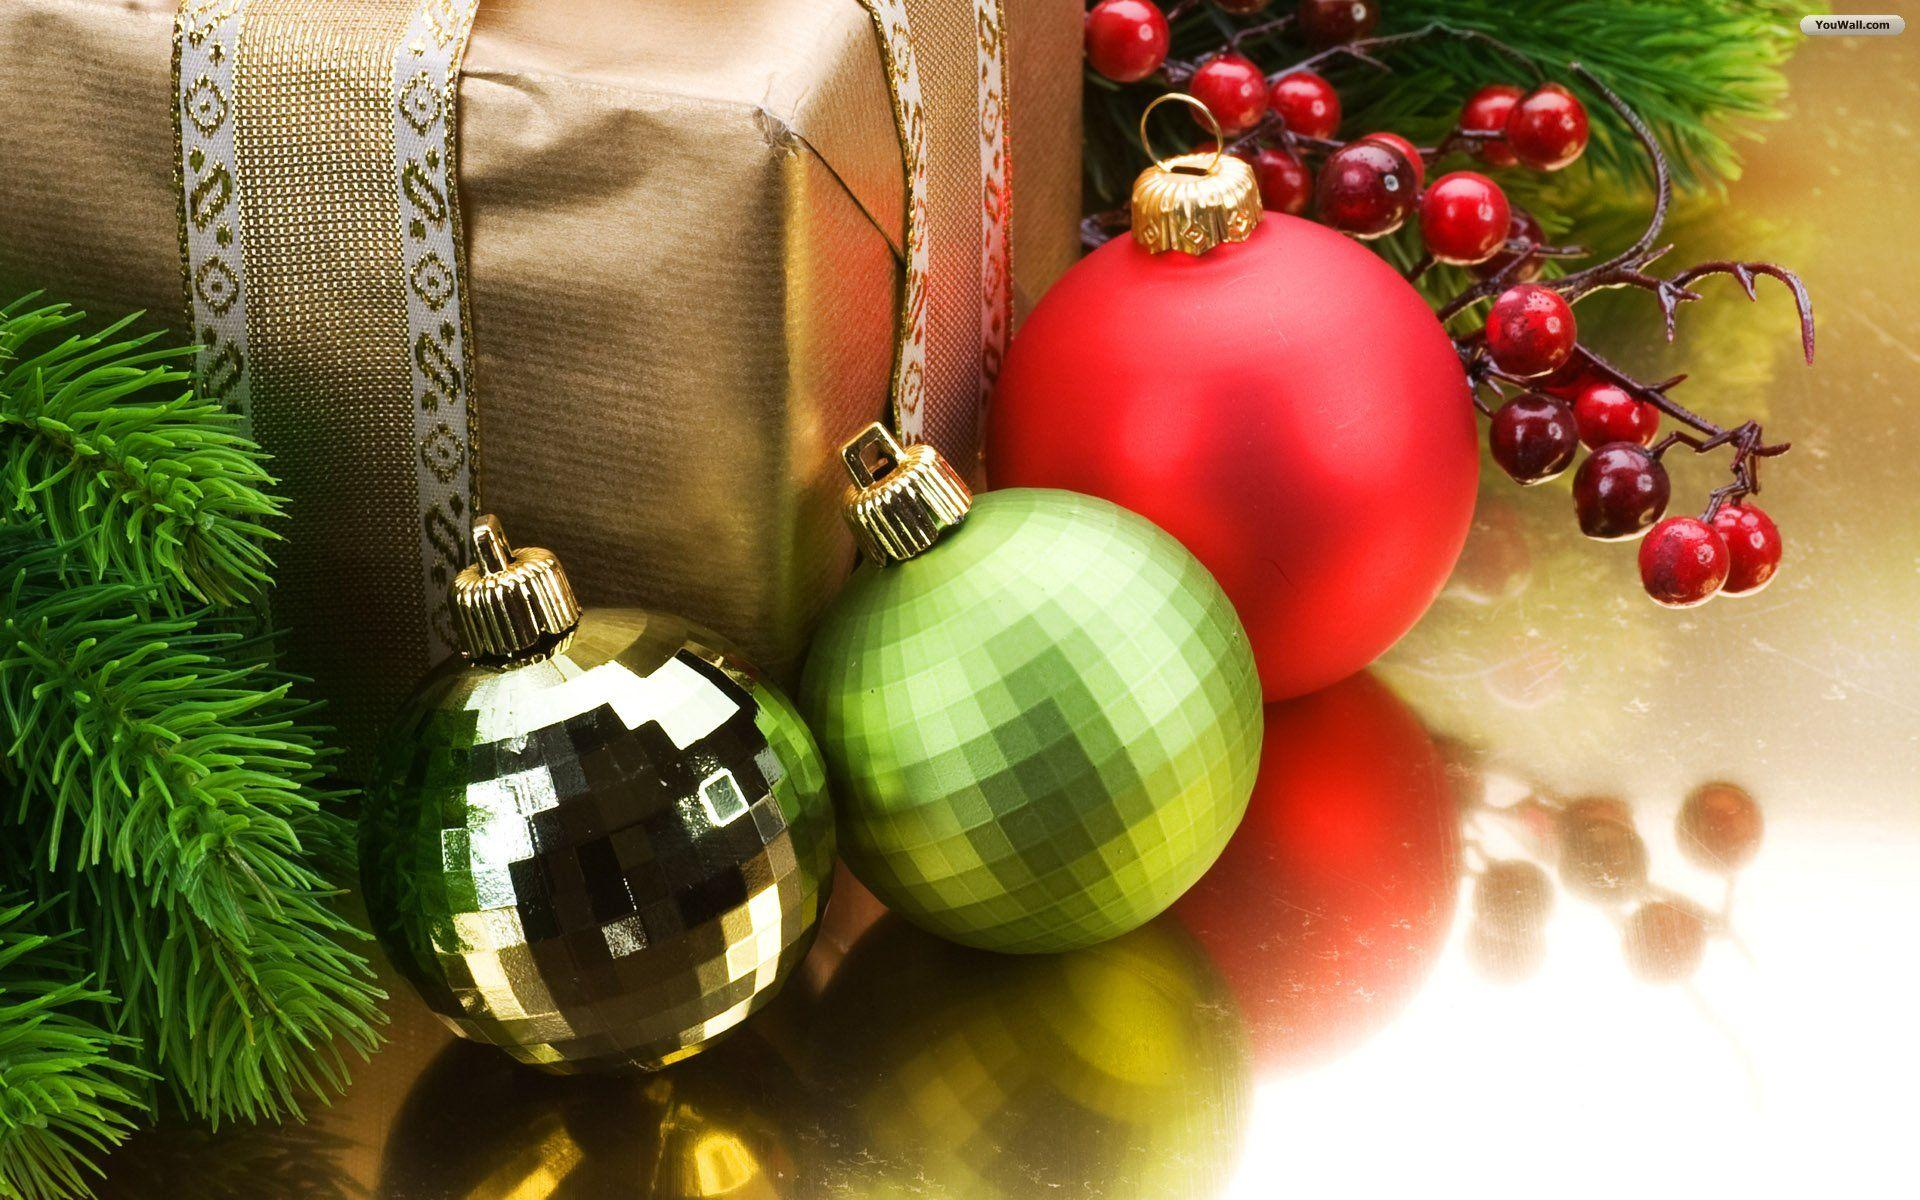 Christmas Decorations Ornaments HD Wallpapers of Christmas